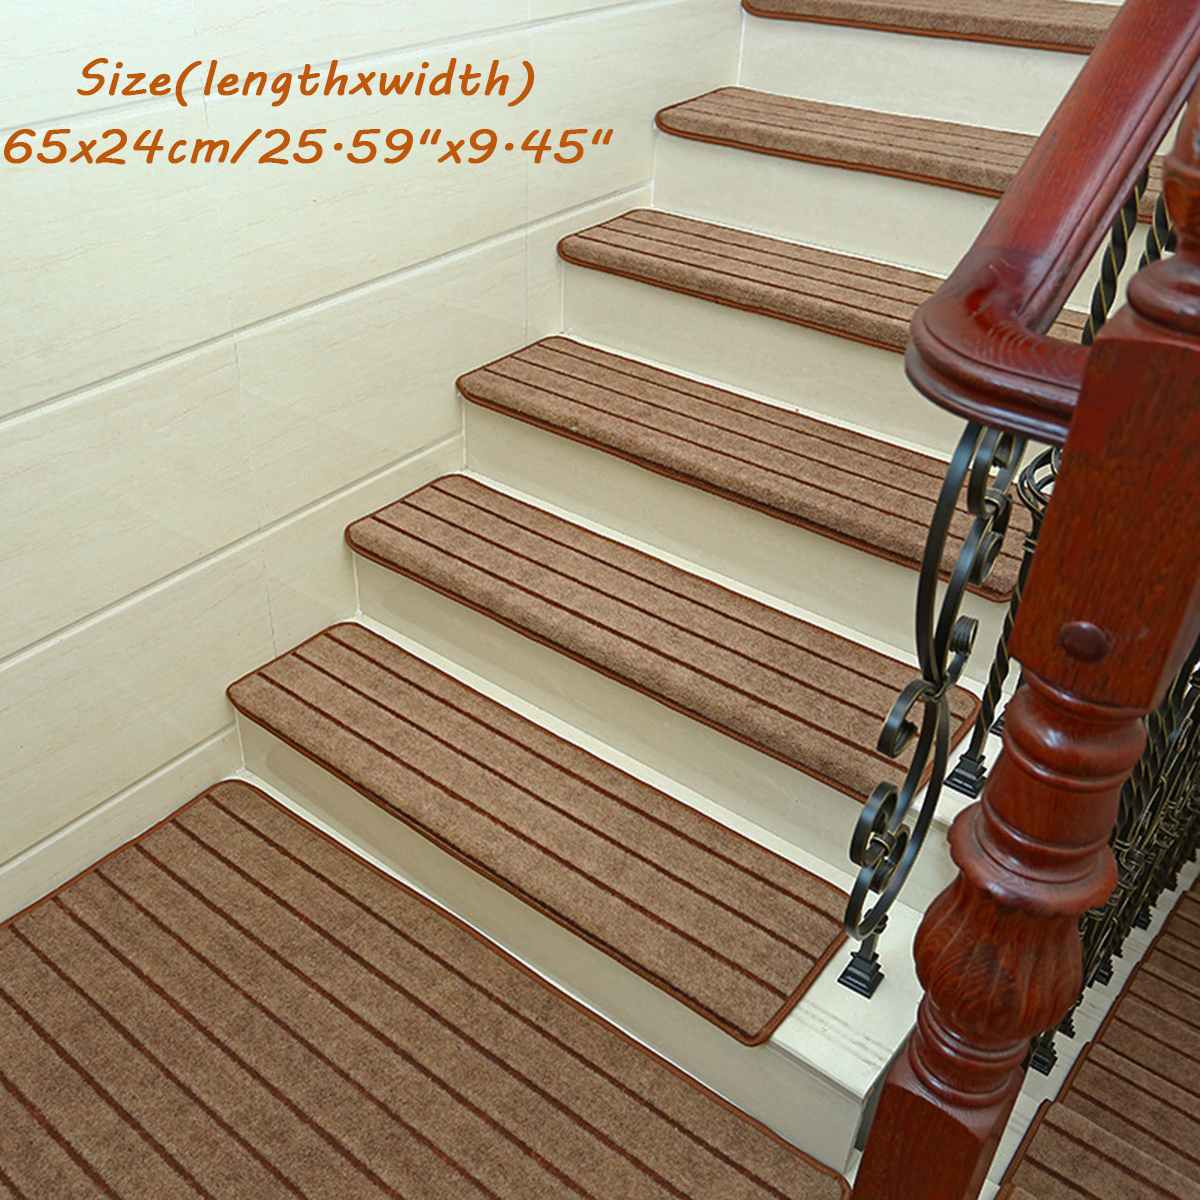 14Pcs Adhesive Stair Treads Rectangle Non-slip Rugs Stair Mats Pads Carpet In 3 Colors Repeatedly-use Safety Pads Mat For Home